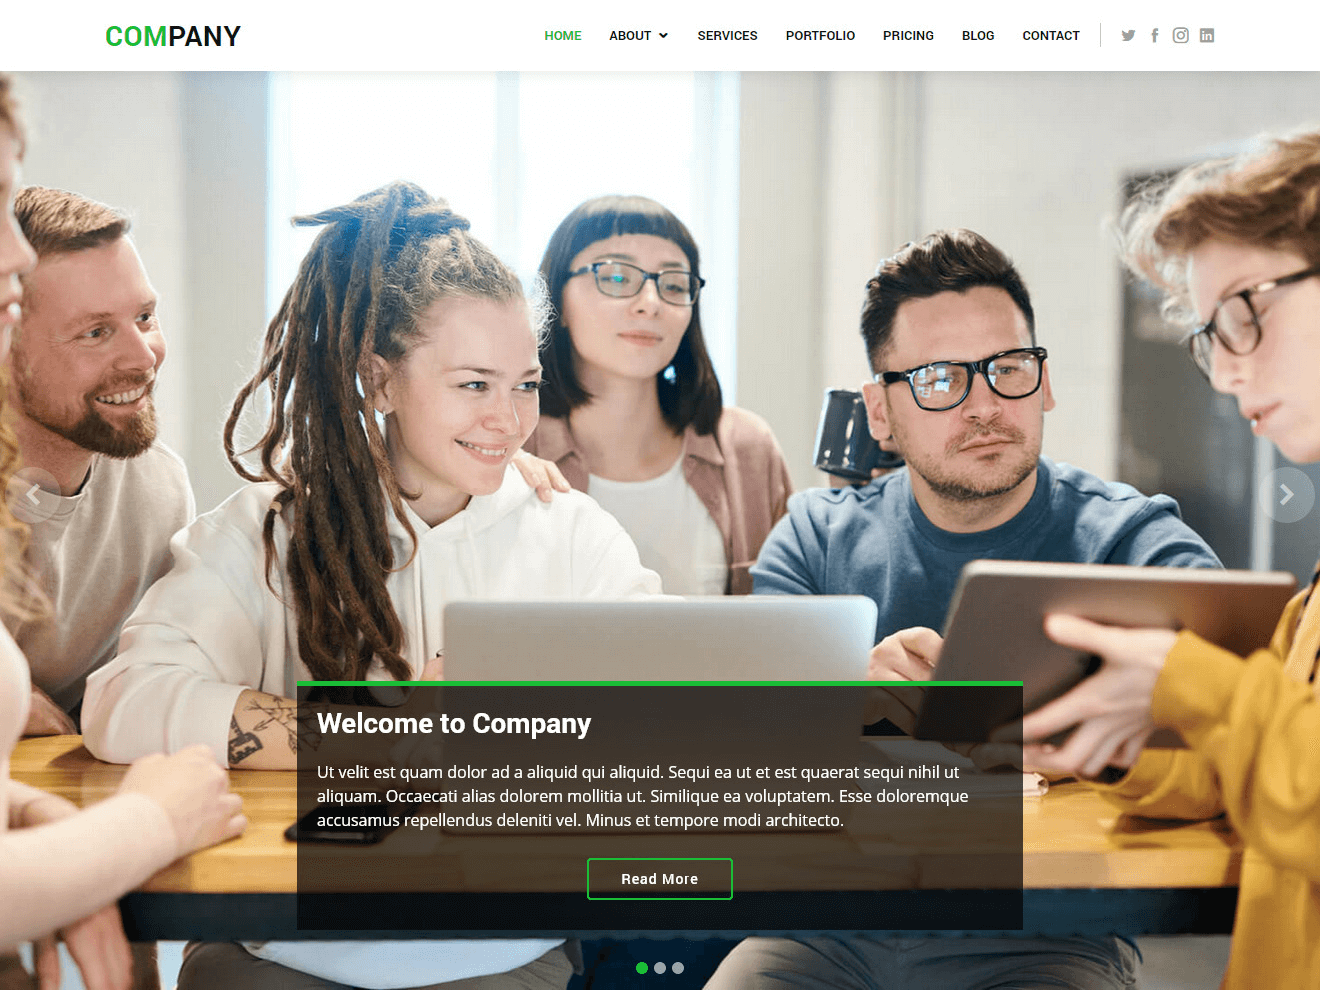 Free Bootstrap Themes and Website Templates | BootstrapMade